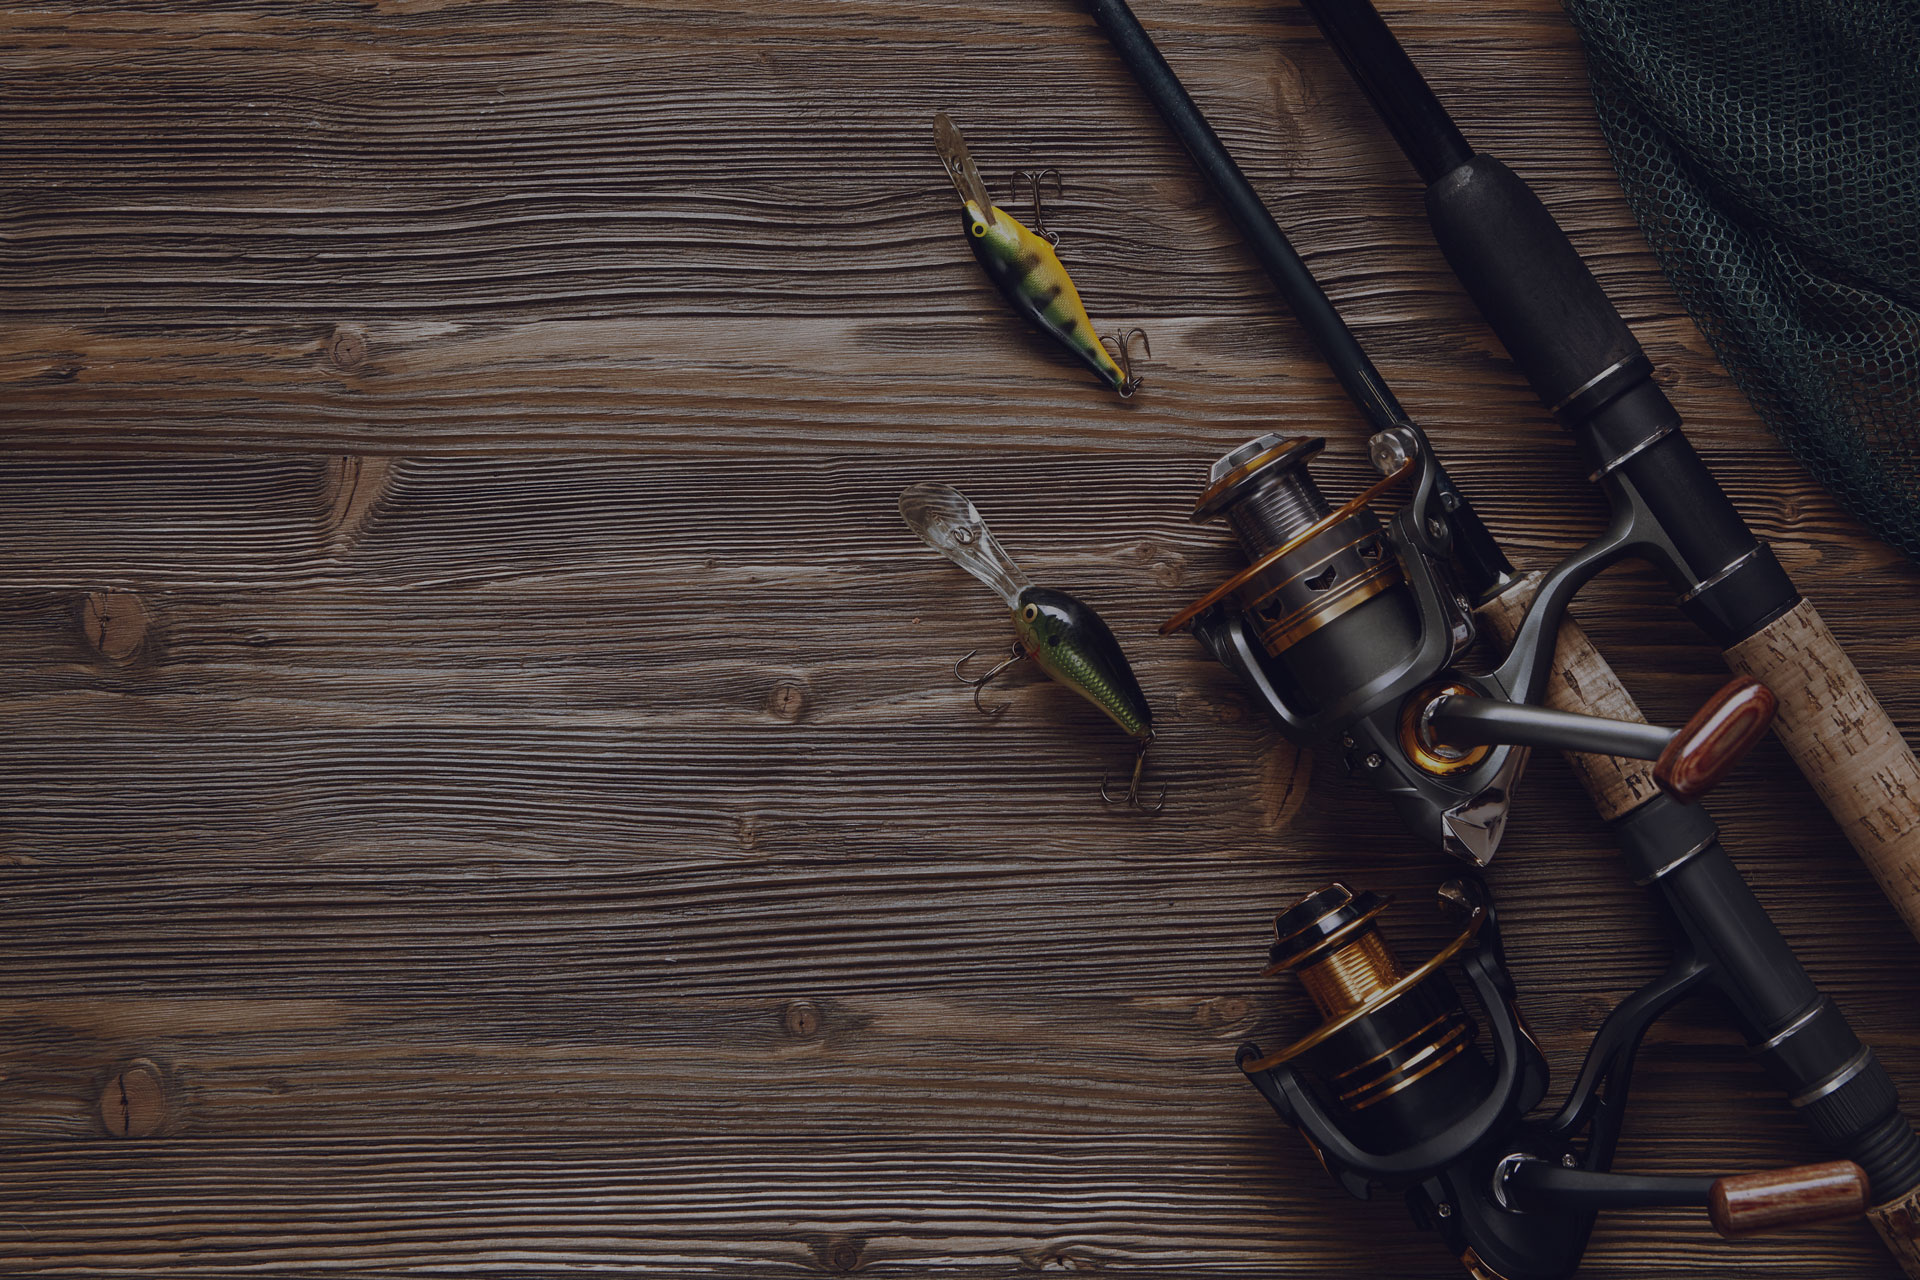 Fishing tackle - fishing spinning, hooks and lures on darken wooden background